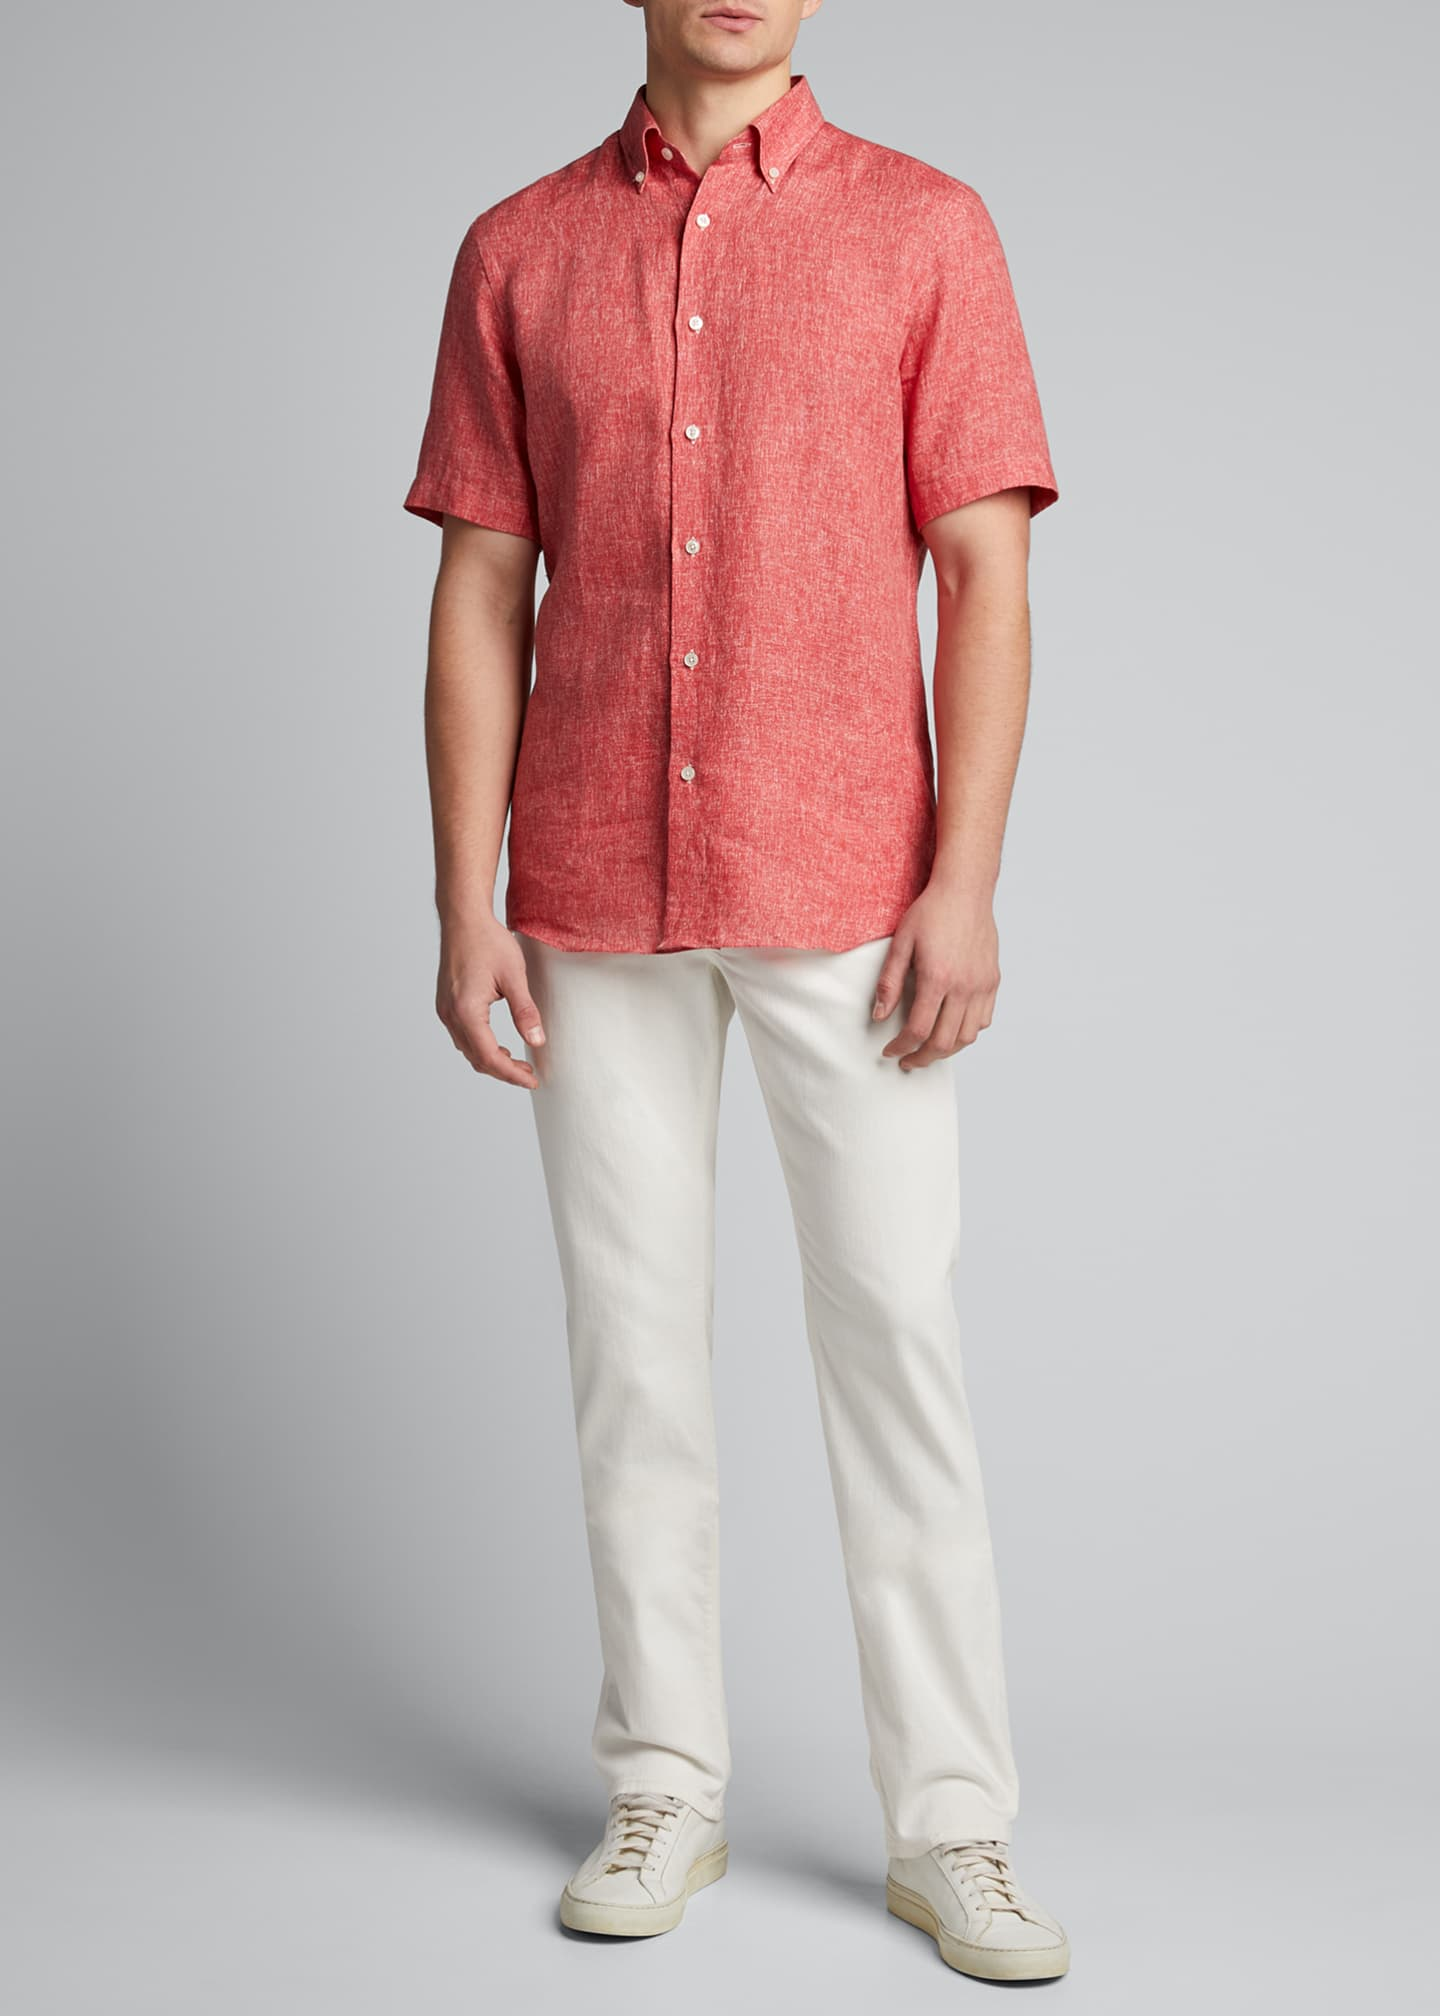 Image 1 of 5: Men's Solid Yarn-Dyed Linen Short-Sleeve Sport Shirt